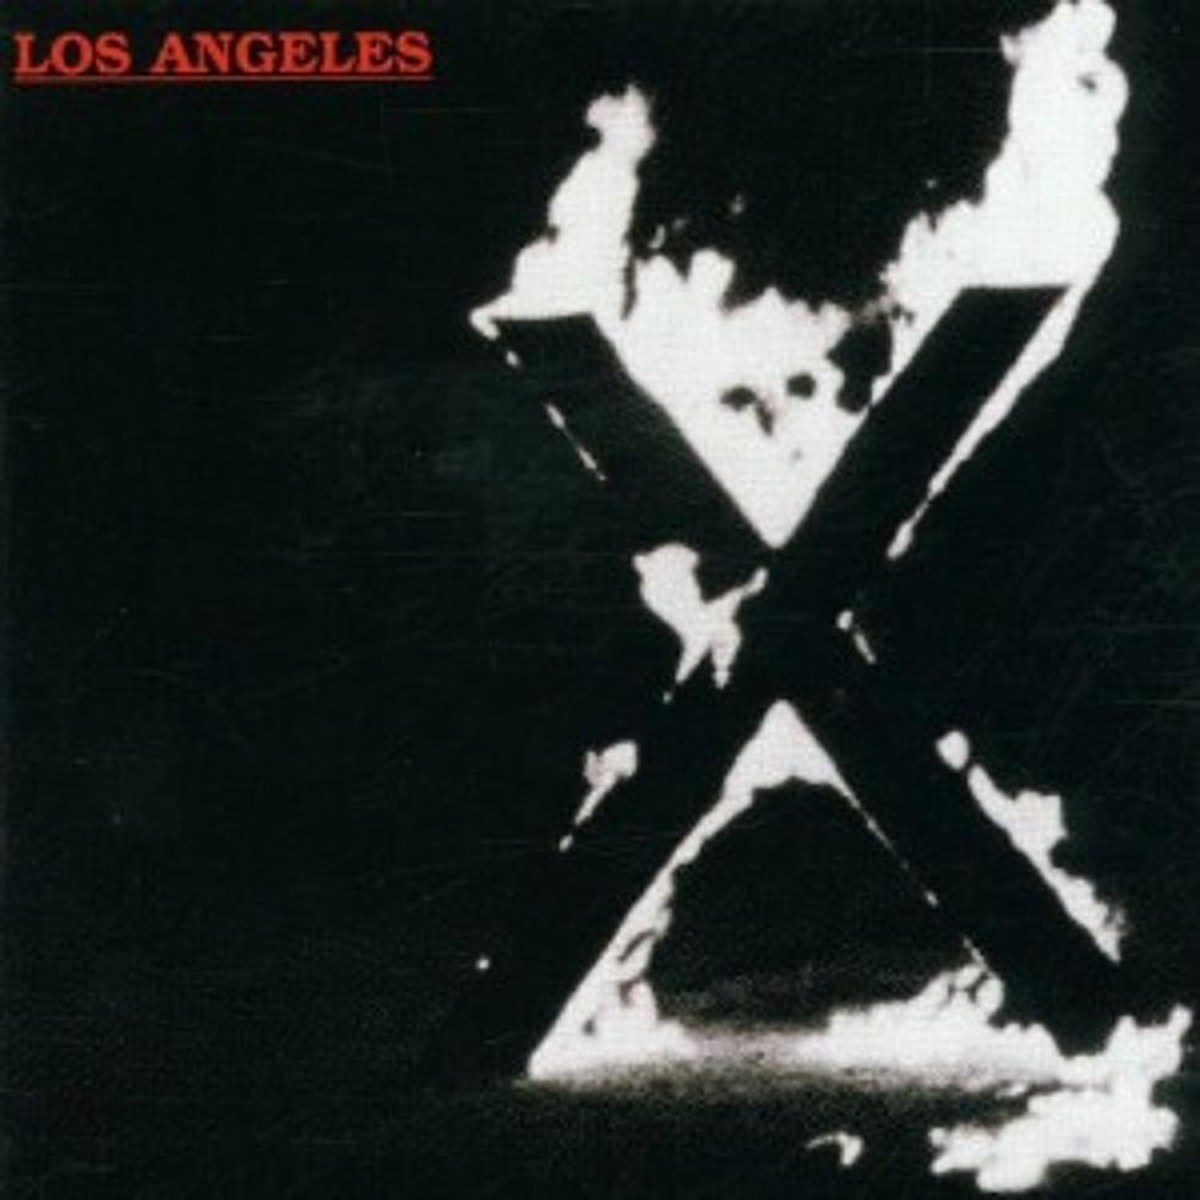 X celebrating 'Los Angeles' 40th anniversary with L.A. show, touring w/ Violent Femmes